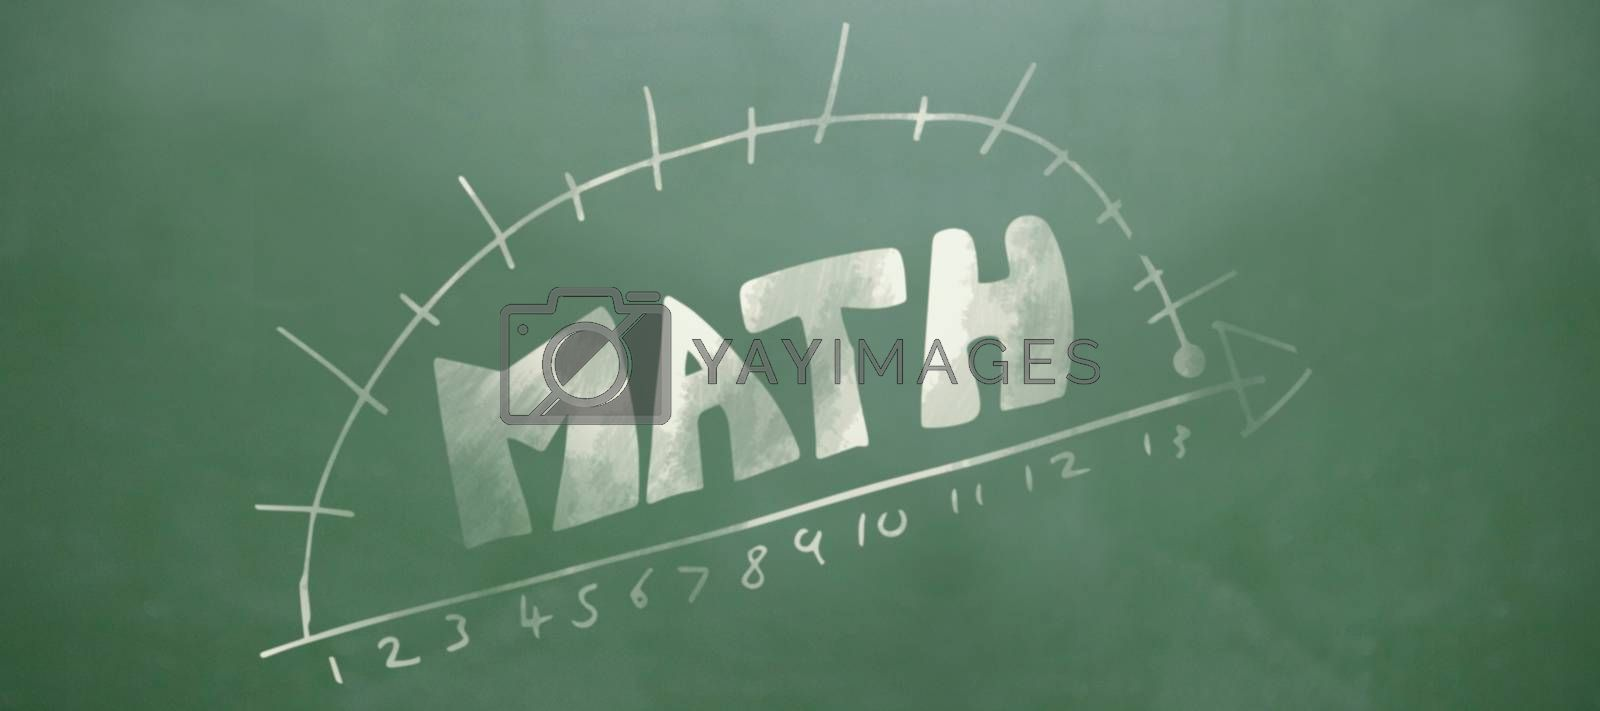 Composite image of math text with diagram and numbers by Wavebreakmedia